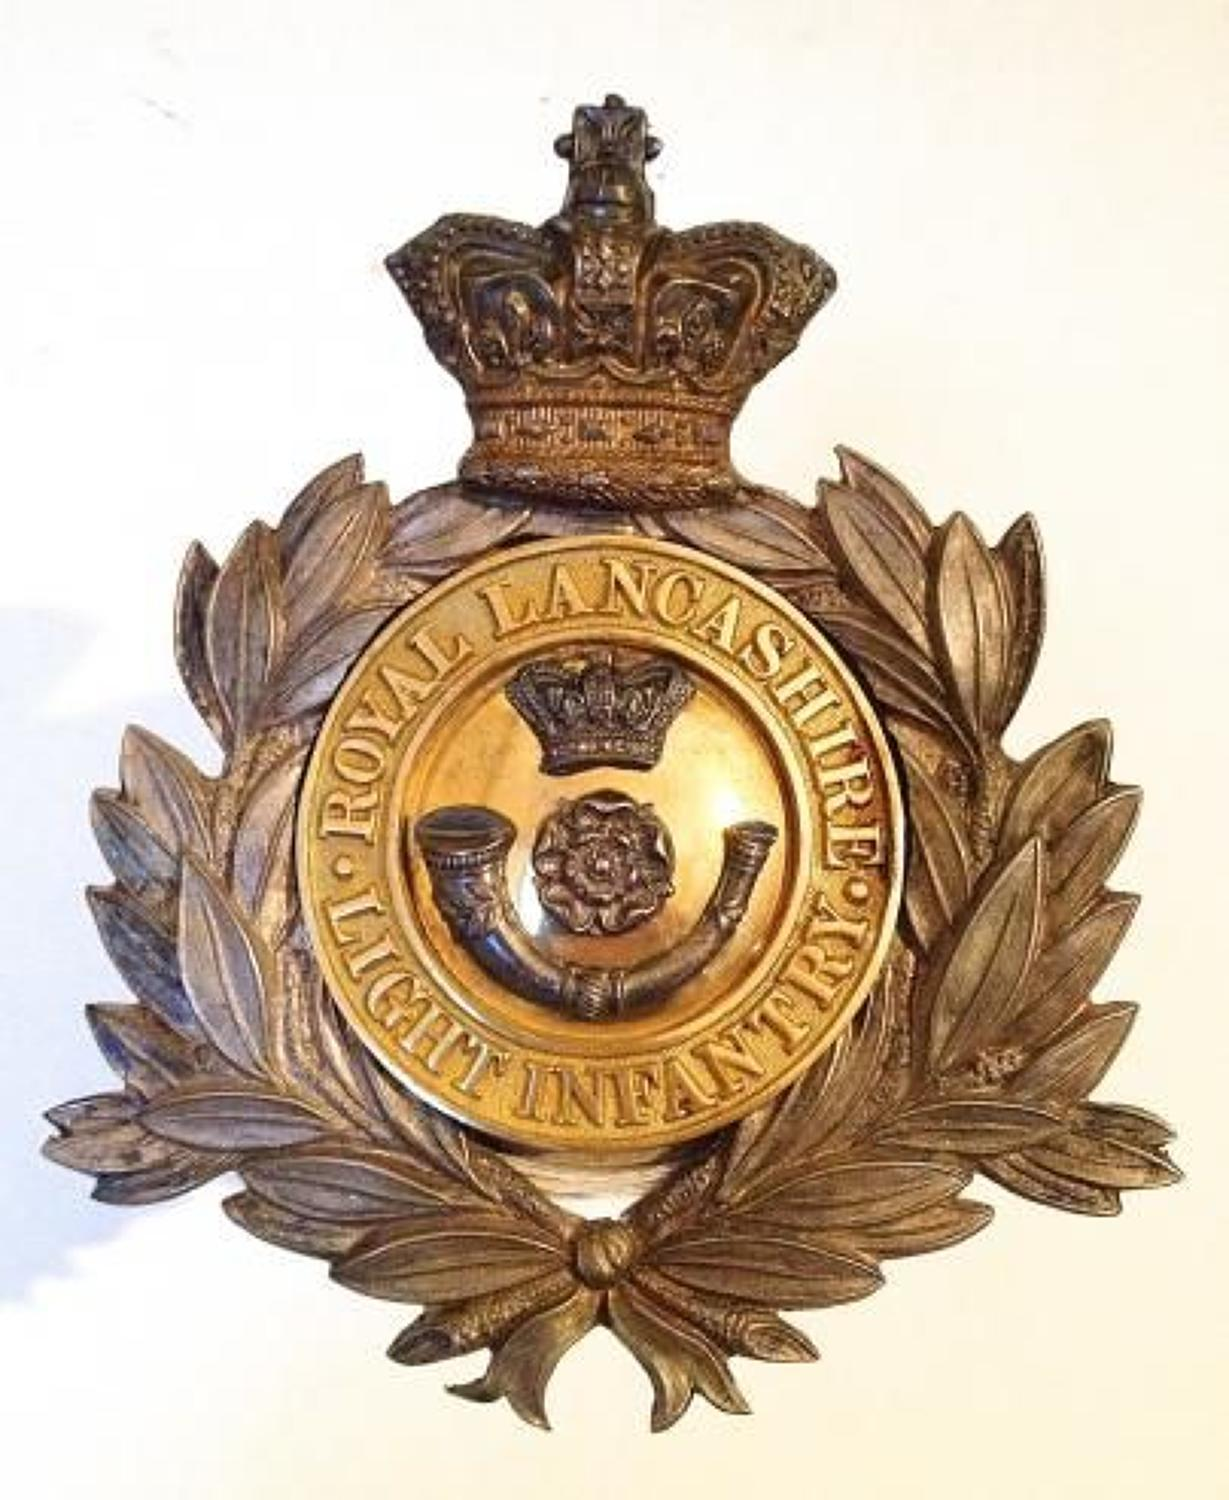 4th Royal Lancashire Light Infantry Officer's shako plate circa 1869